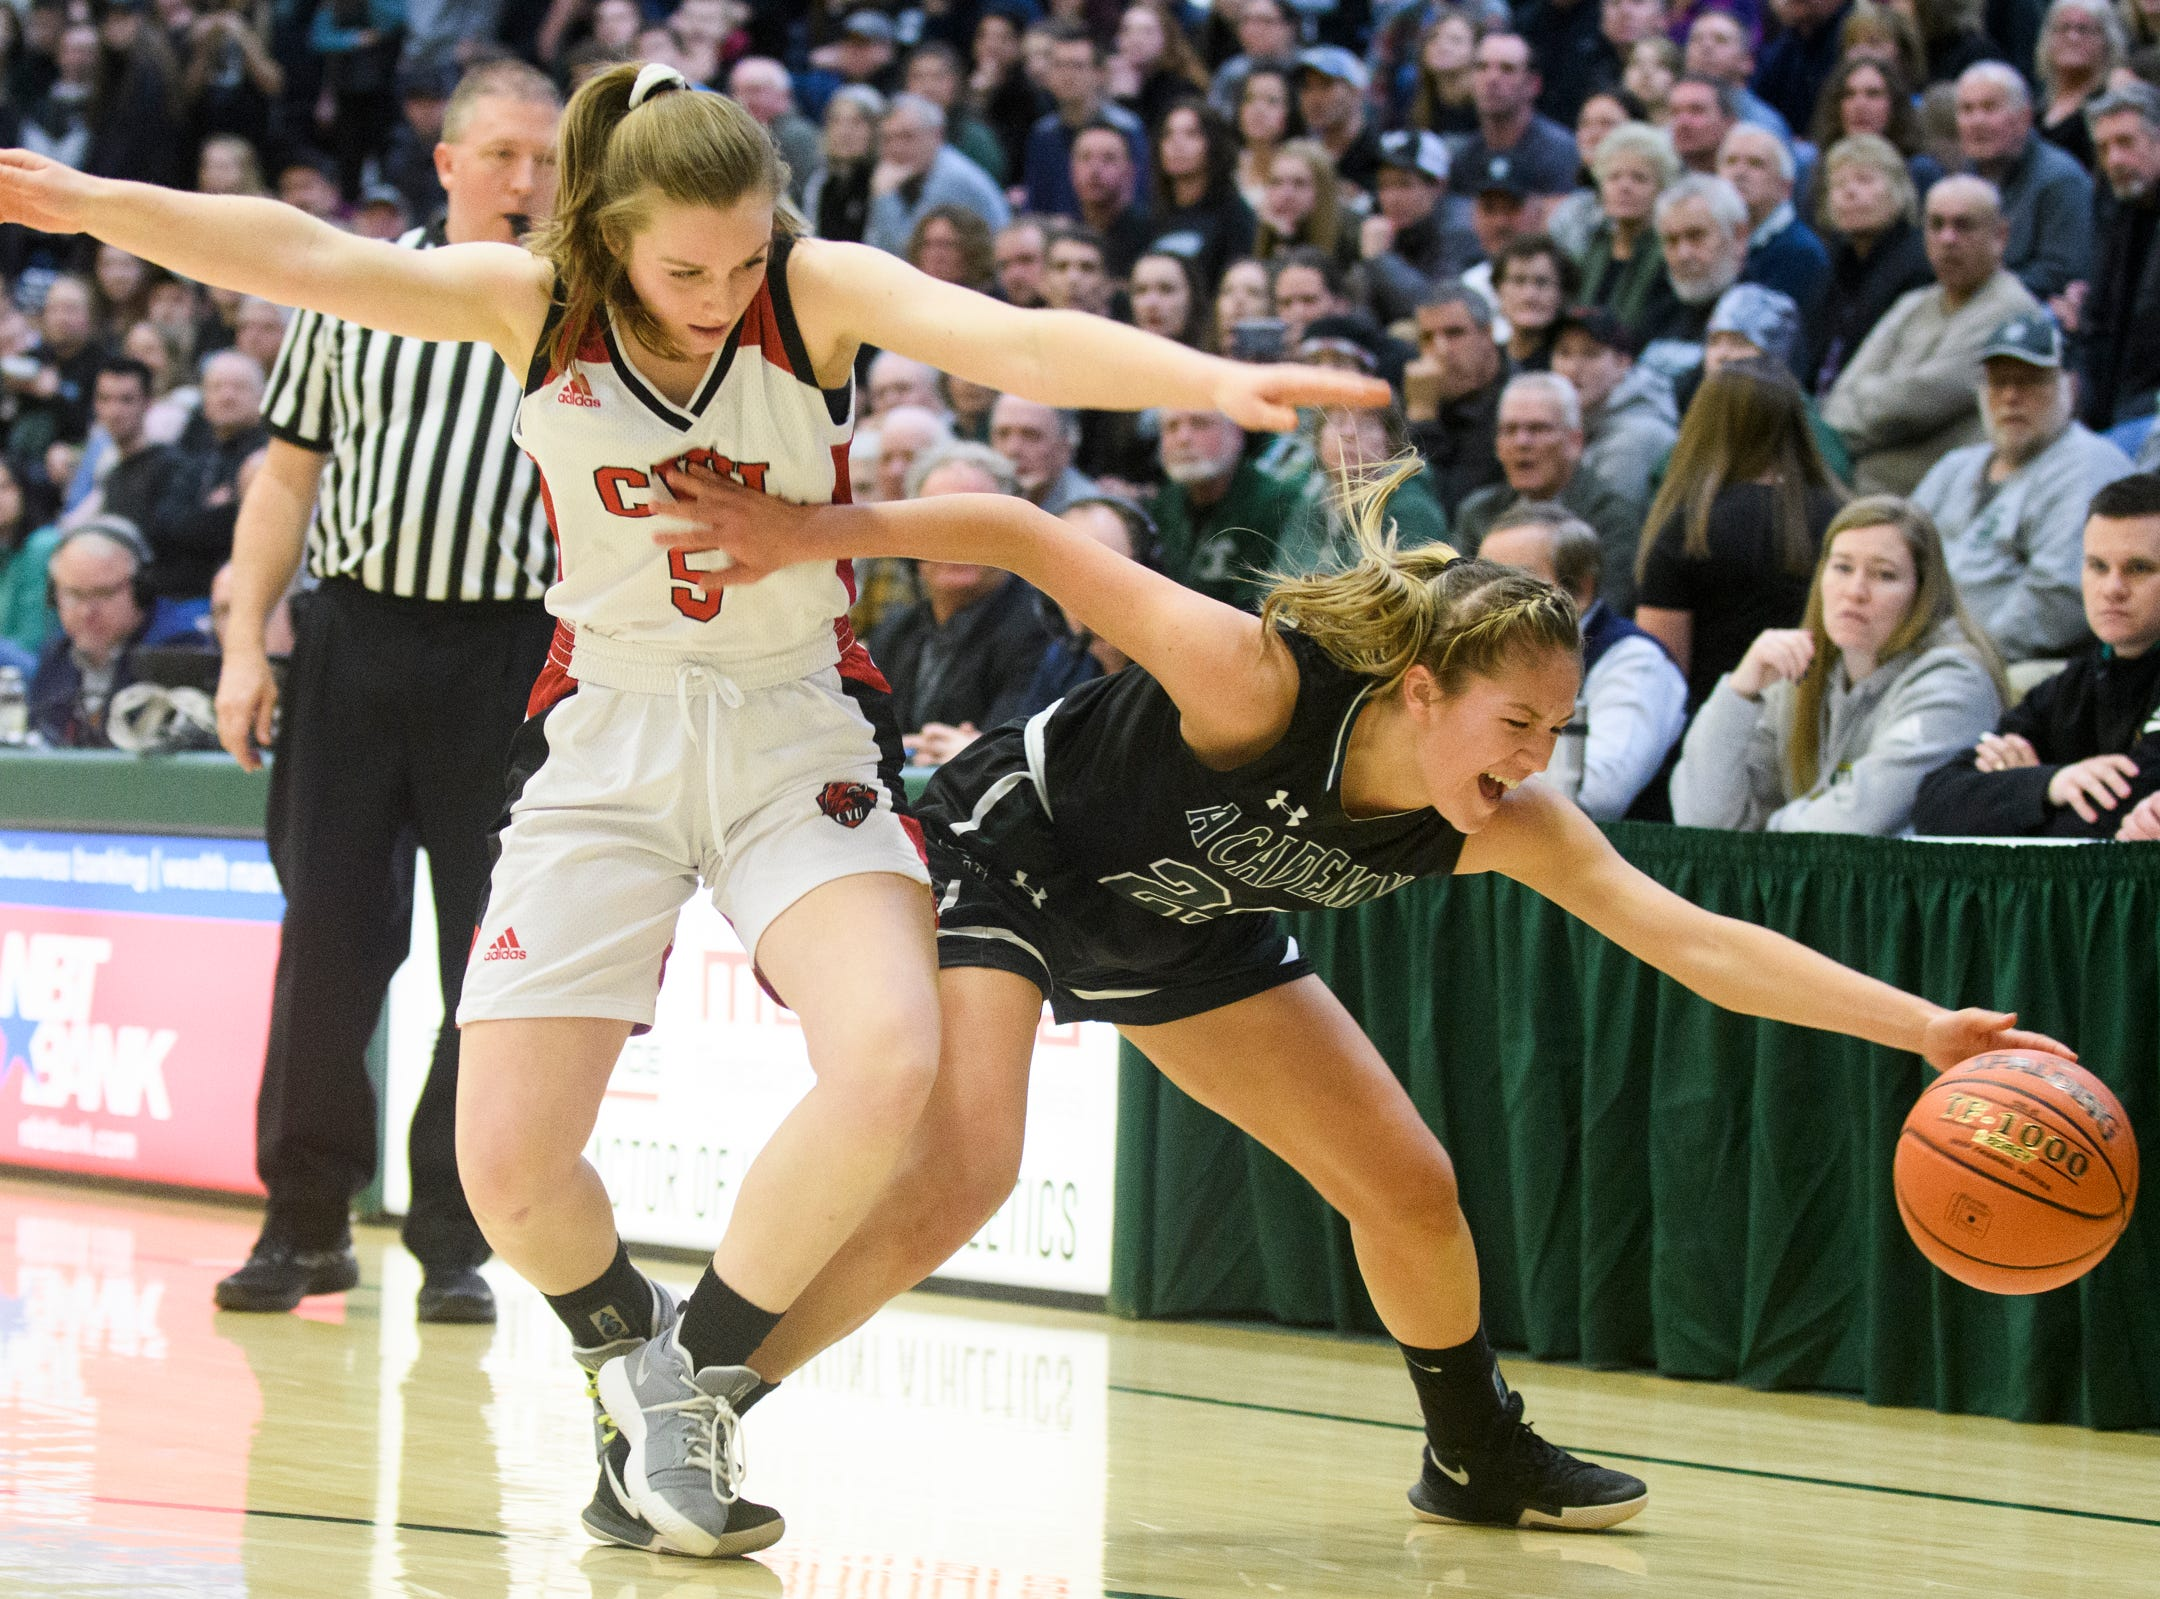 St. Johnsbury's Neva Bostic (23) battles for the loose ball with CVU's Mary Askew (5) during the division I girls basketball championship basketball game between the St. Johnsbury Hilltoppers and the Champlain Valley Union Redhawks at Patrick Gym on Sunday afternoon March 10, 2019 in Burlington, Vermont.